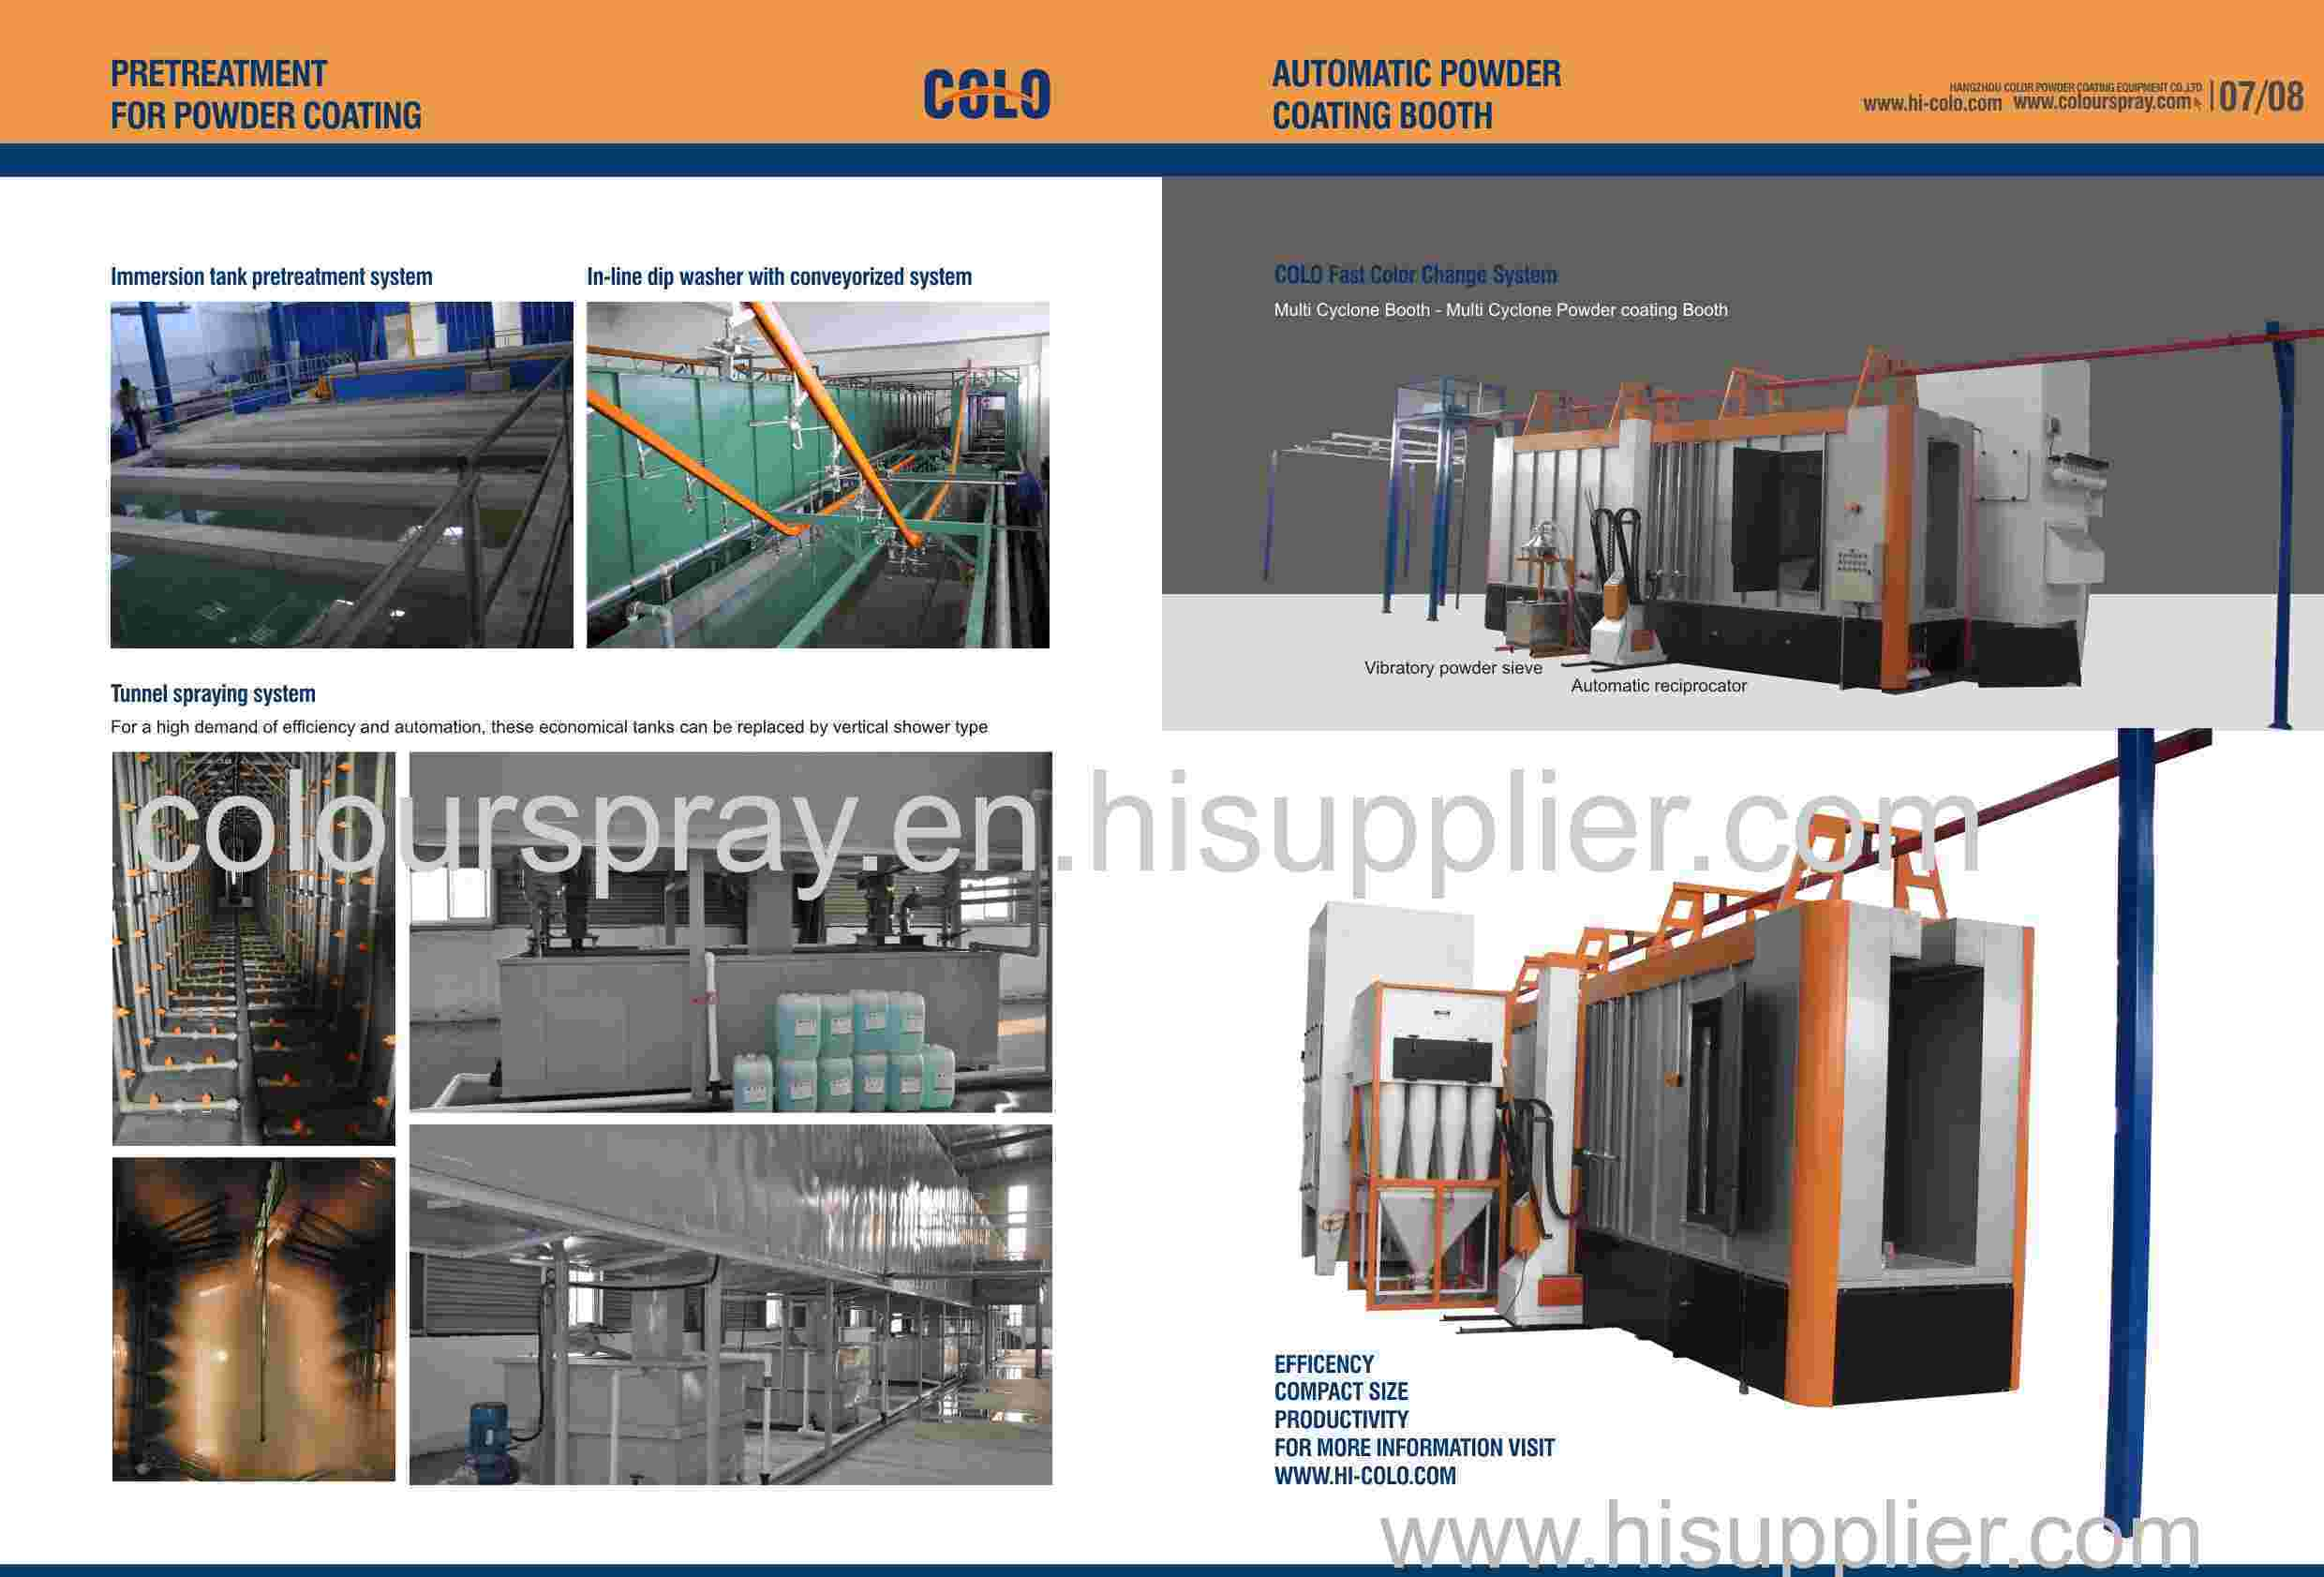 cyclone powder booth system catalogue